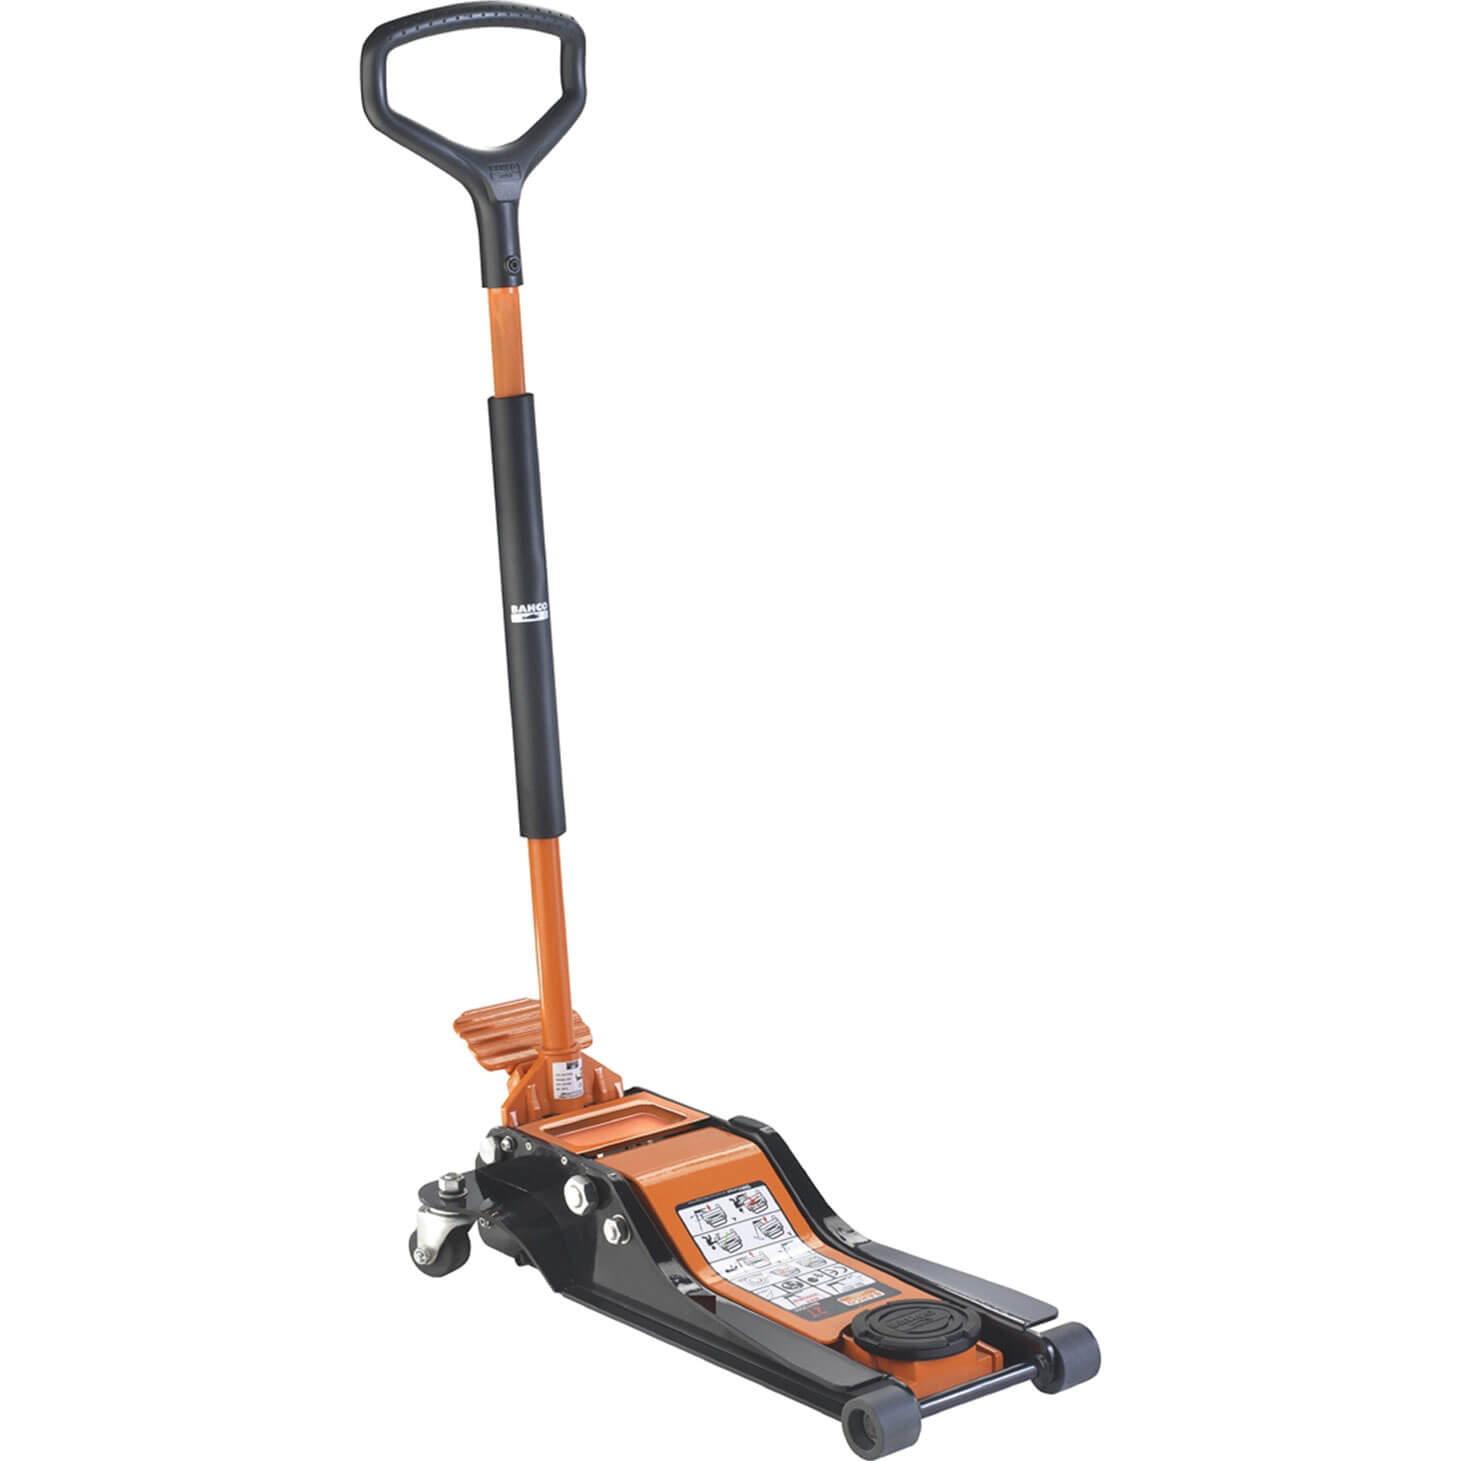 Bahco Low Entry Trolley Jack 2 Tonne